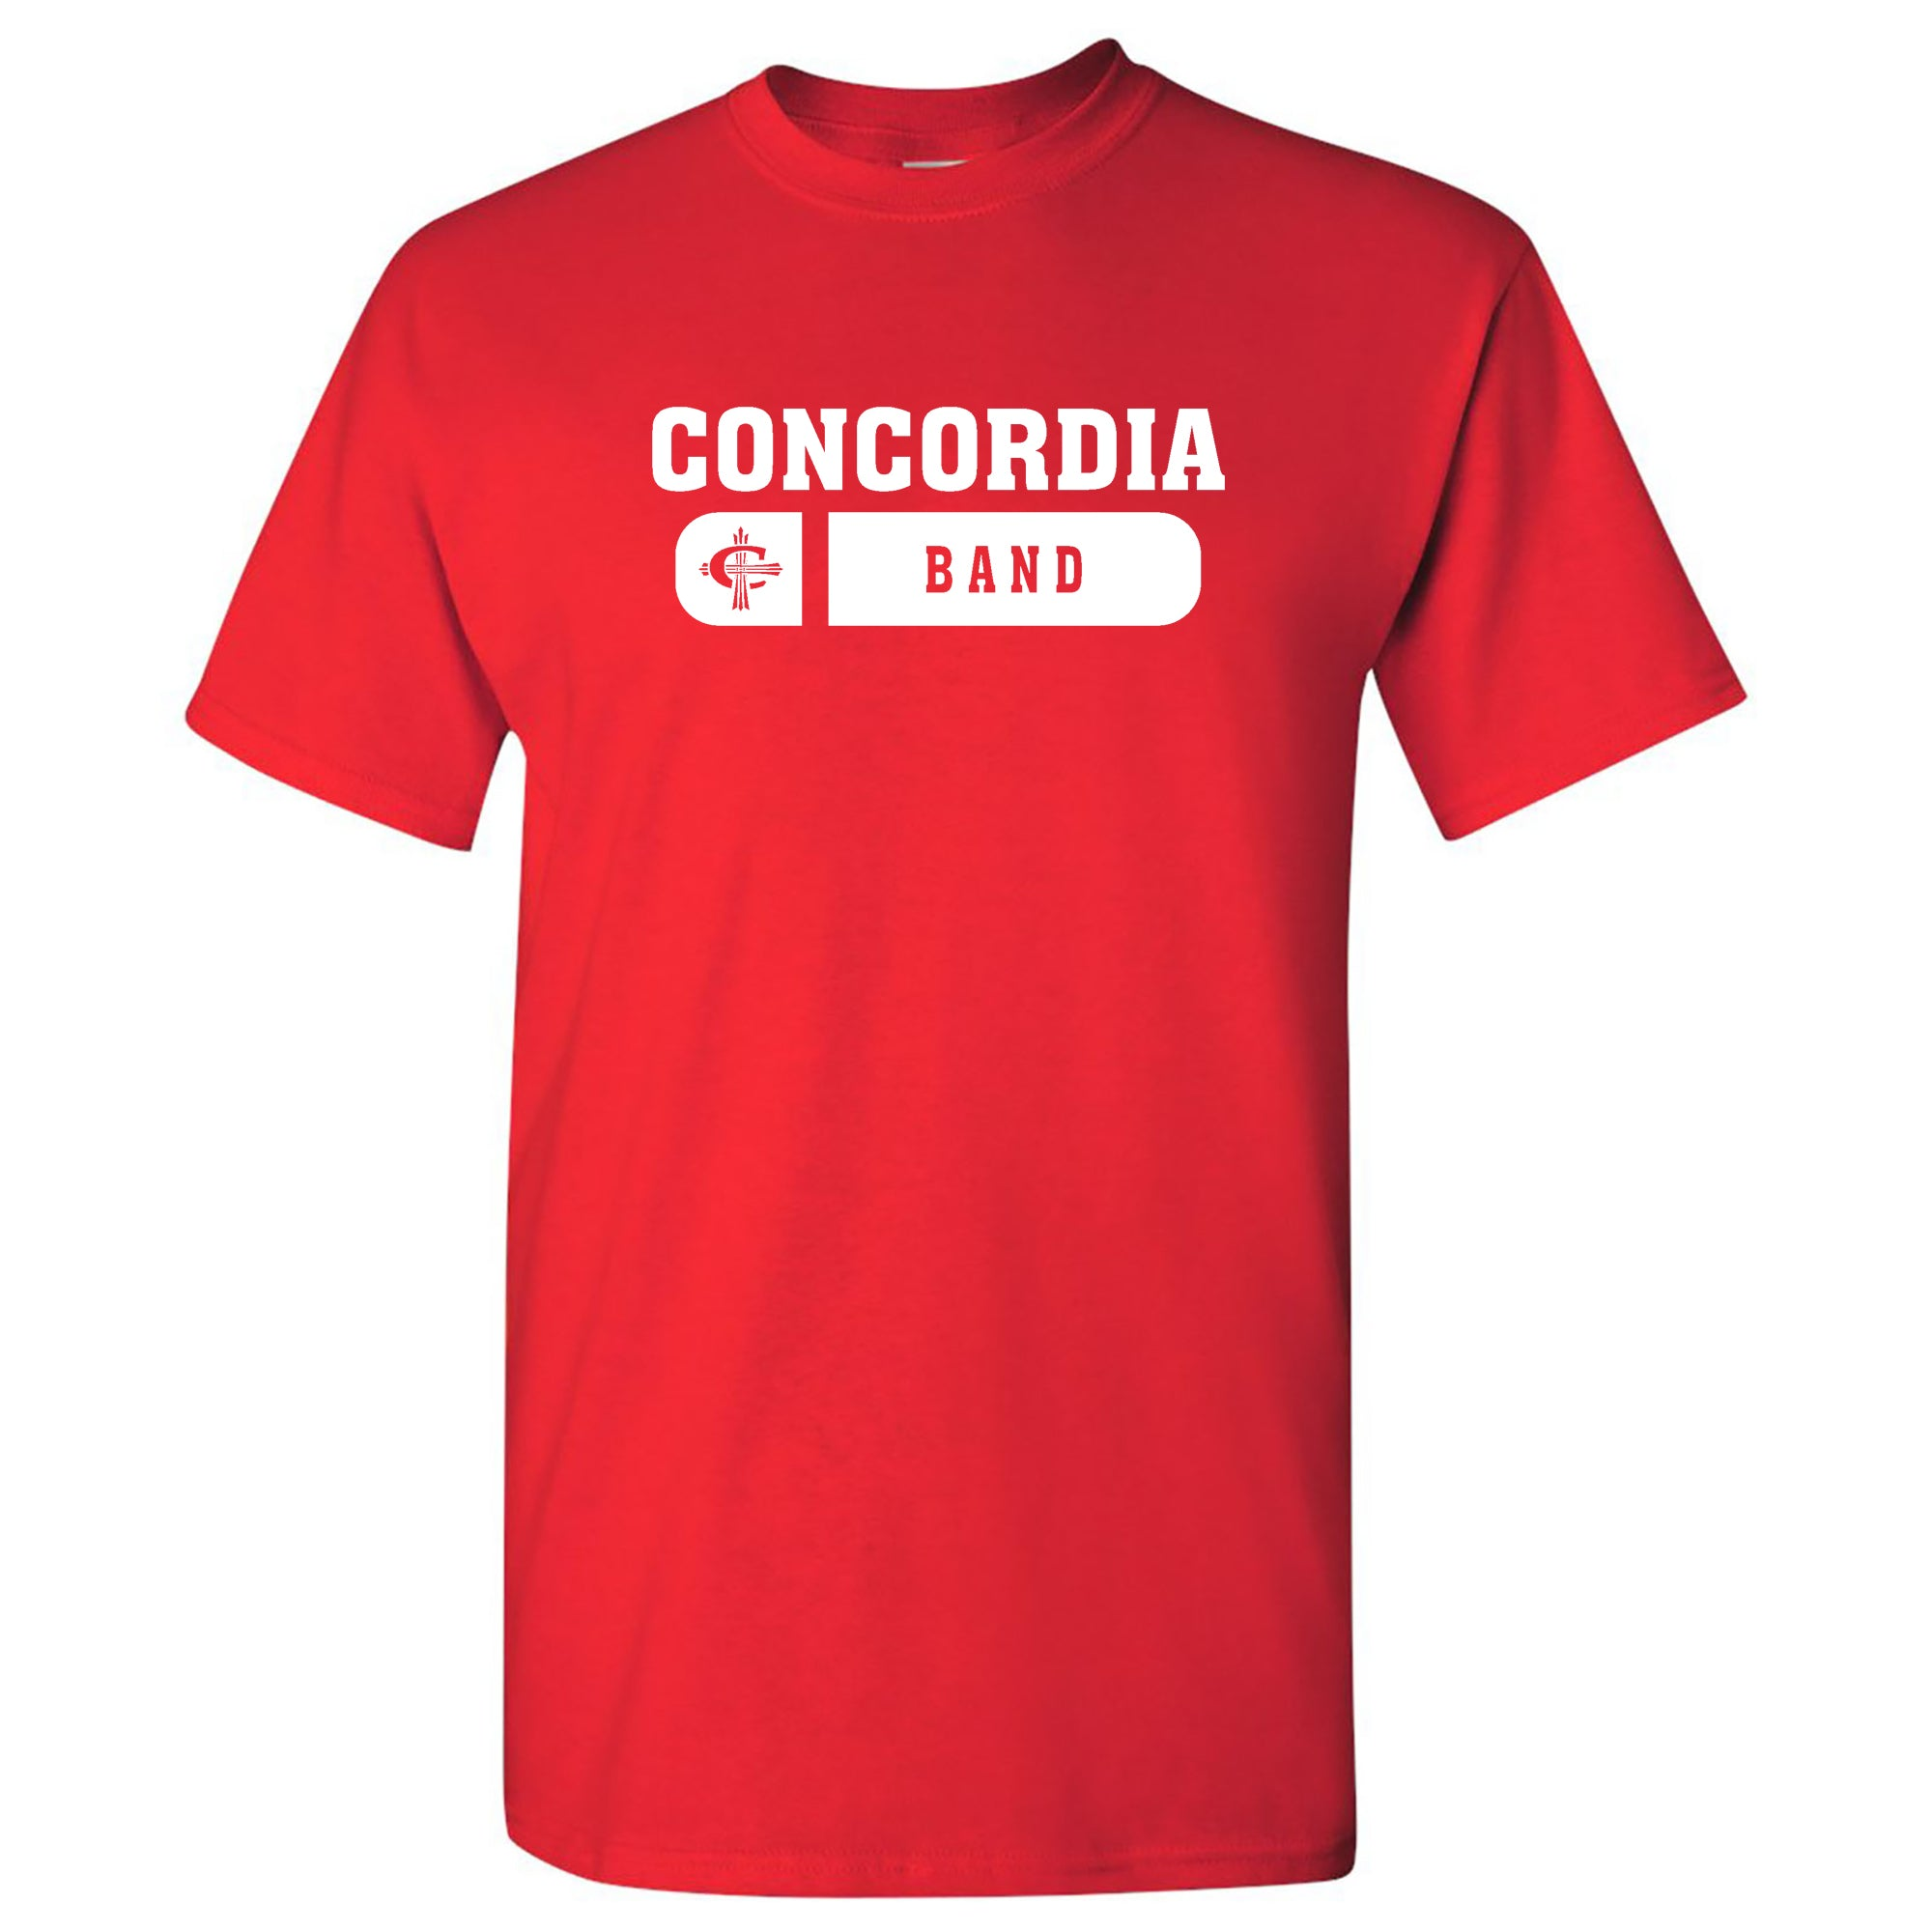 Concordia Band Unisex T-Shirt - Red